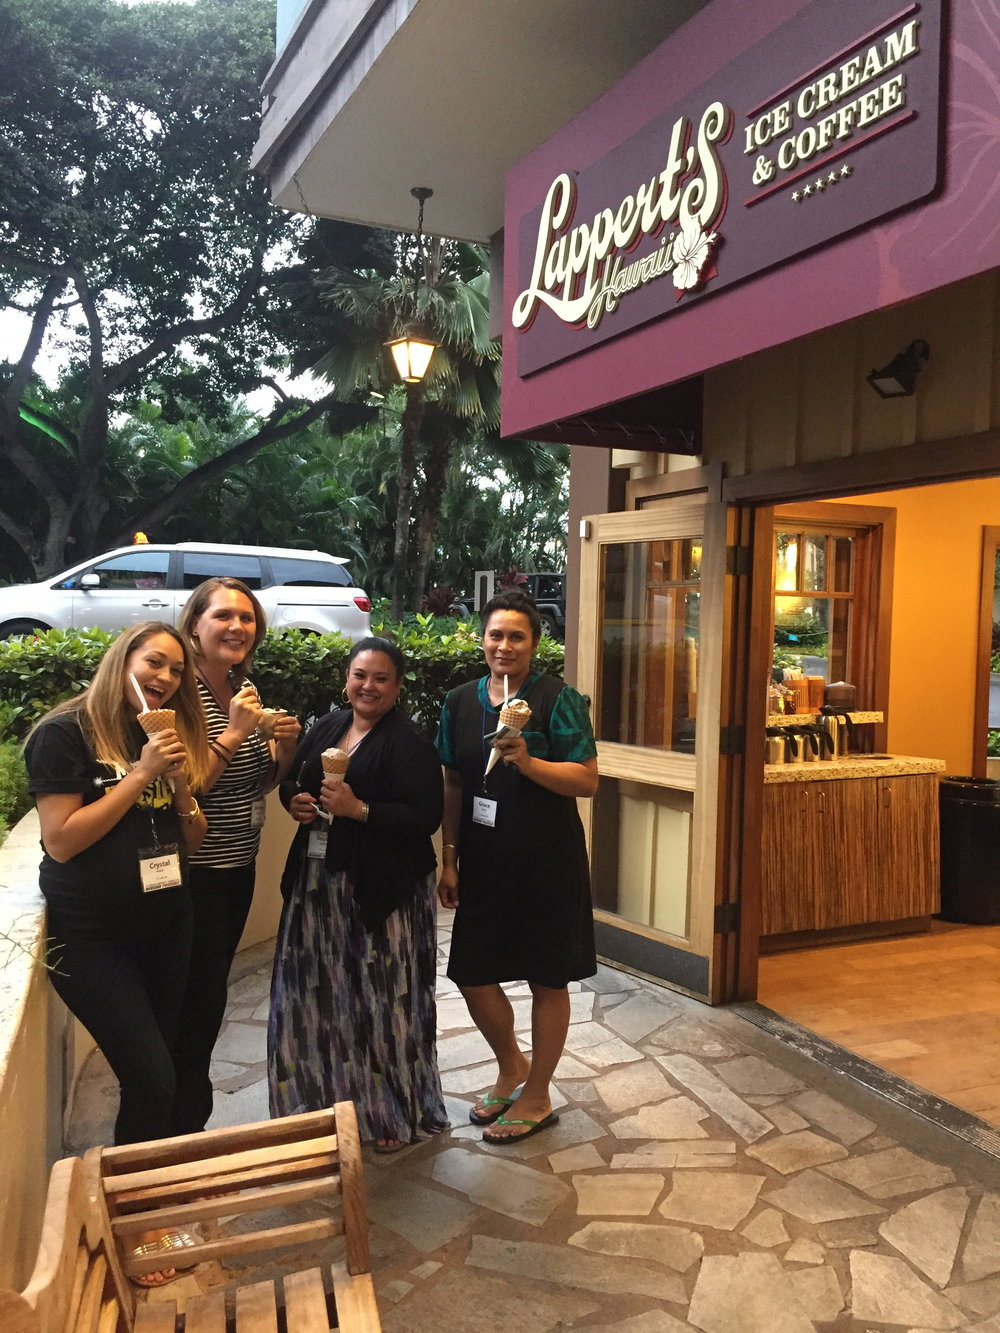 And you can't be at the Hilton Hawaiian Village and not walk across the street for some Lappert's, now can you?